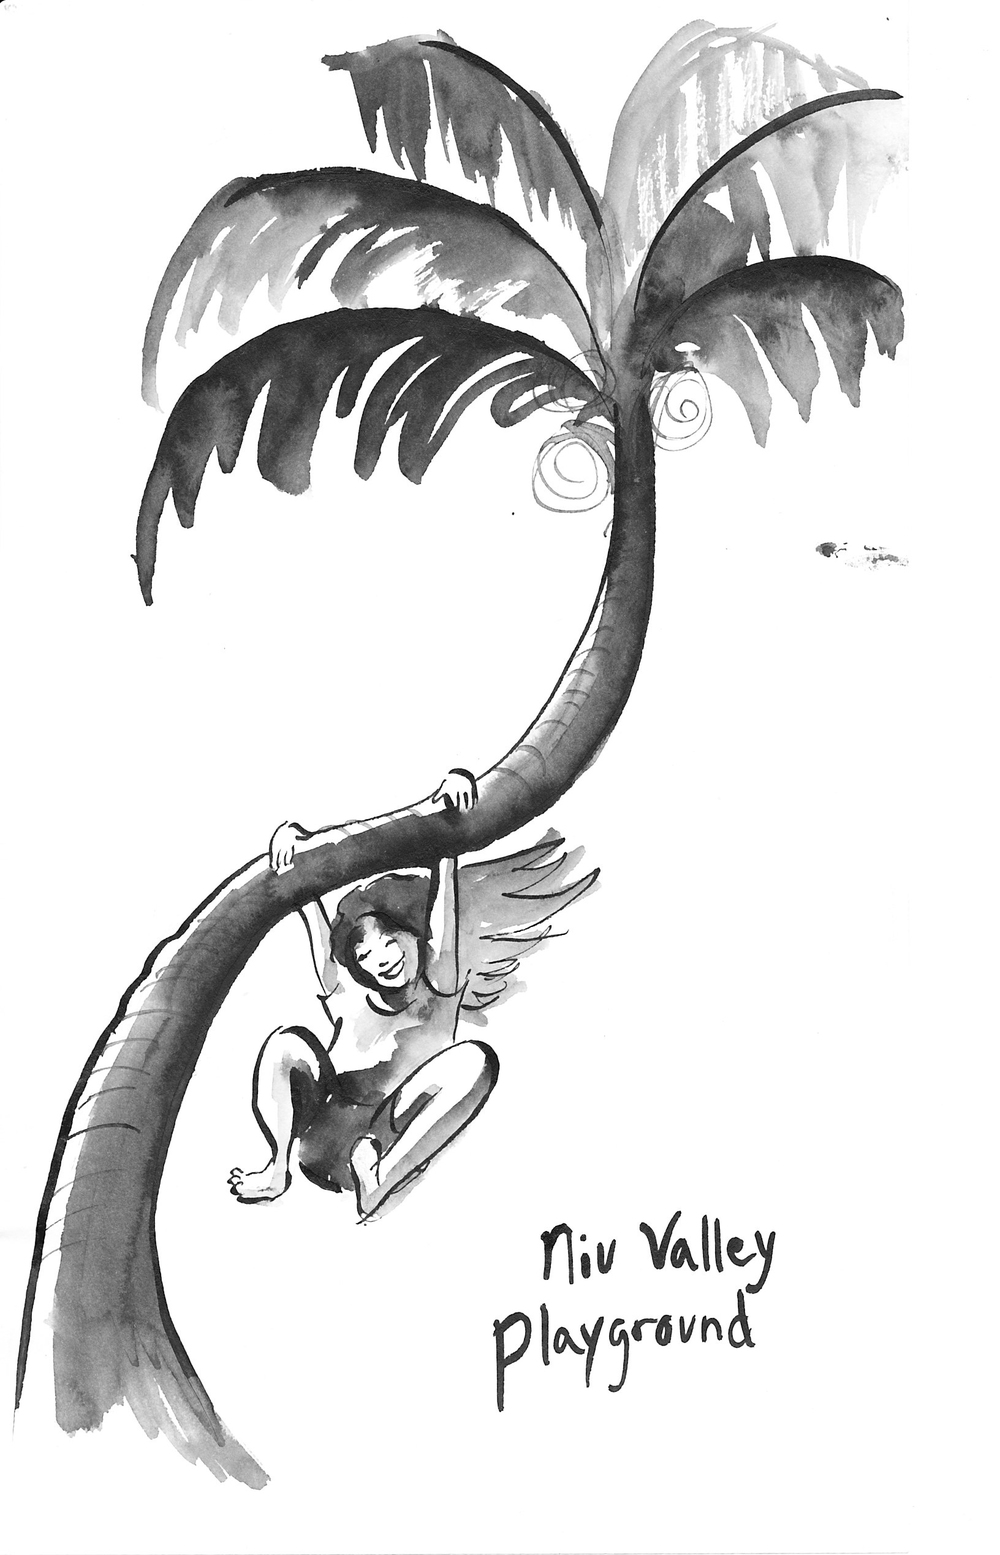 Logo for the Niu Valley Playground Group